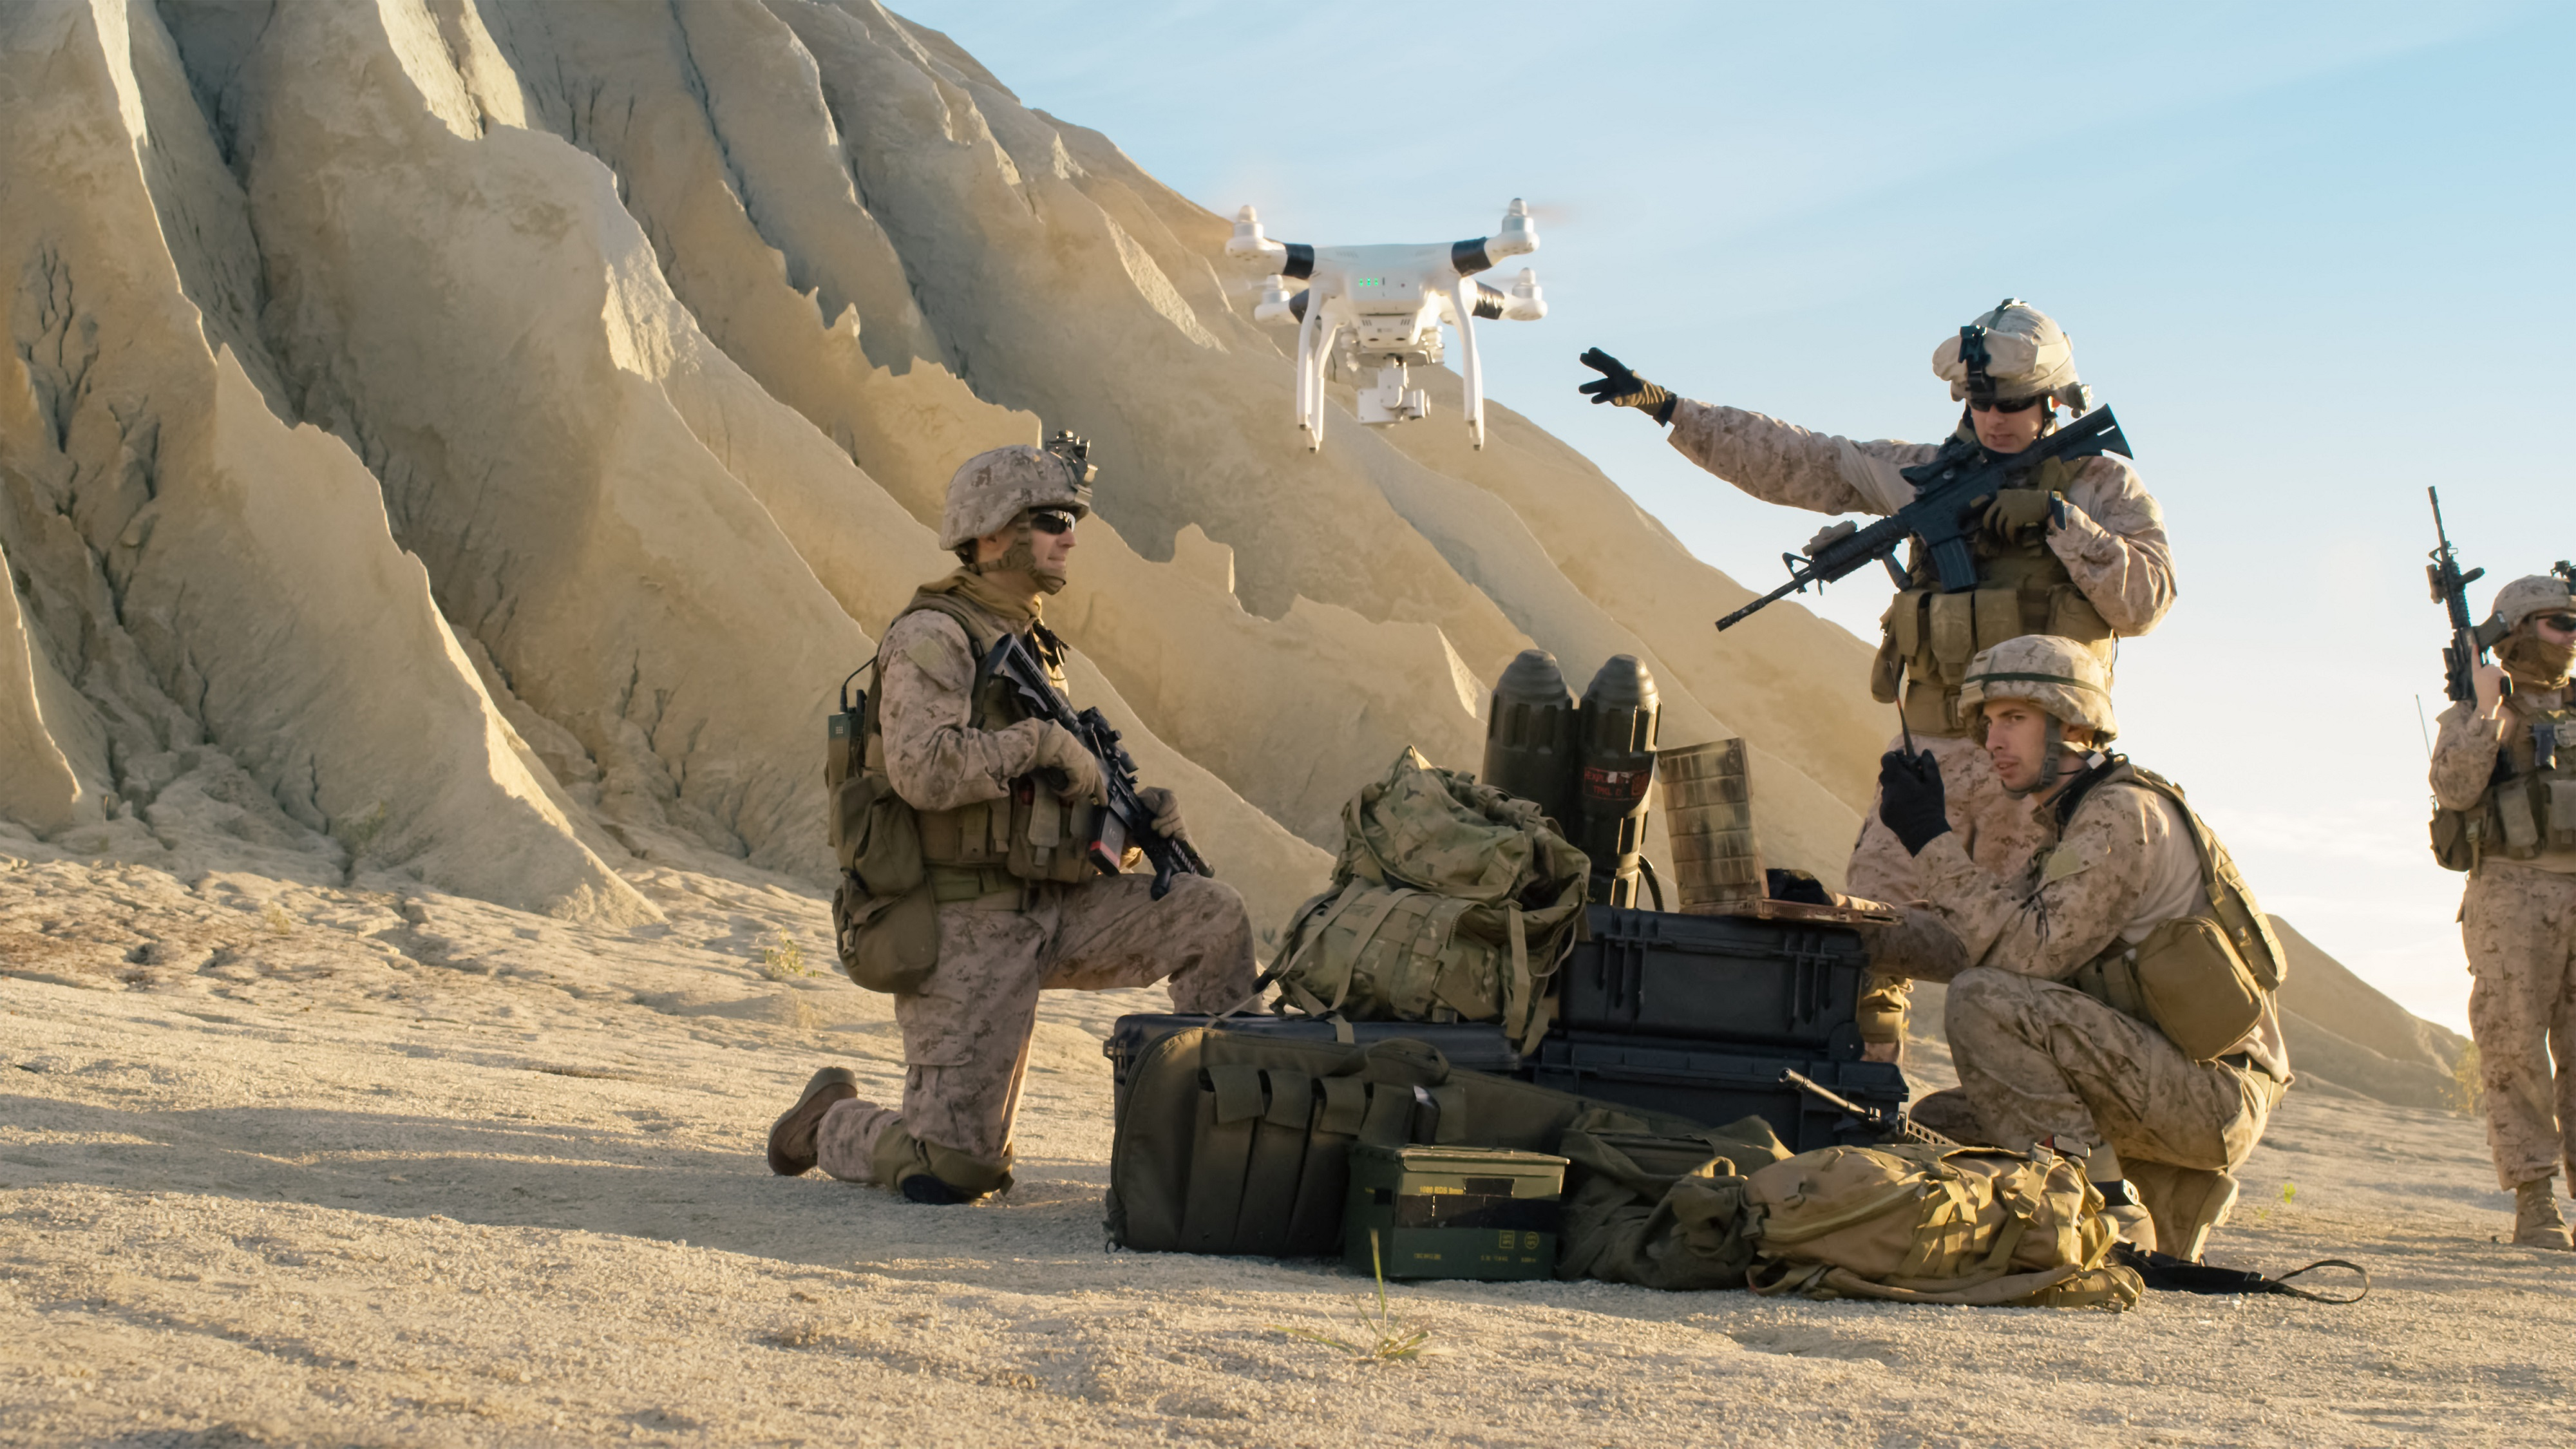 US Army Taps Autonomous Drones To Resupply Troops